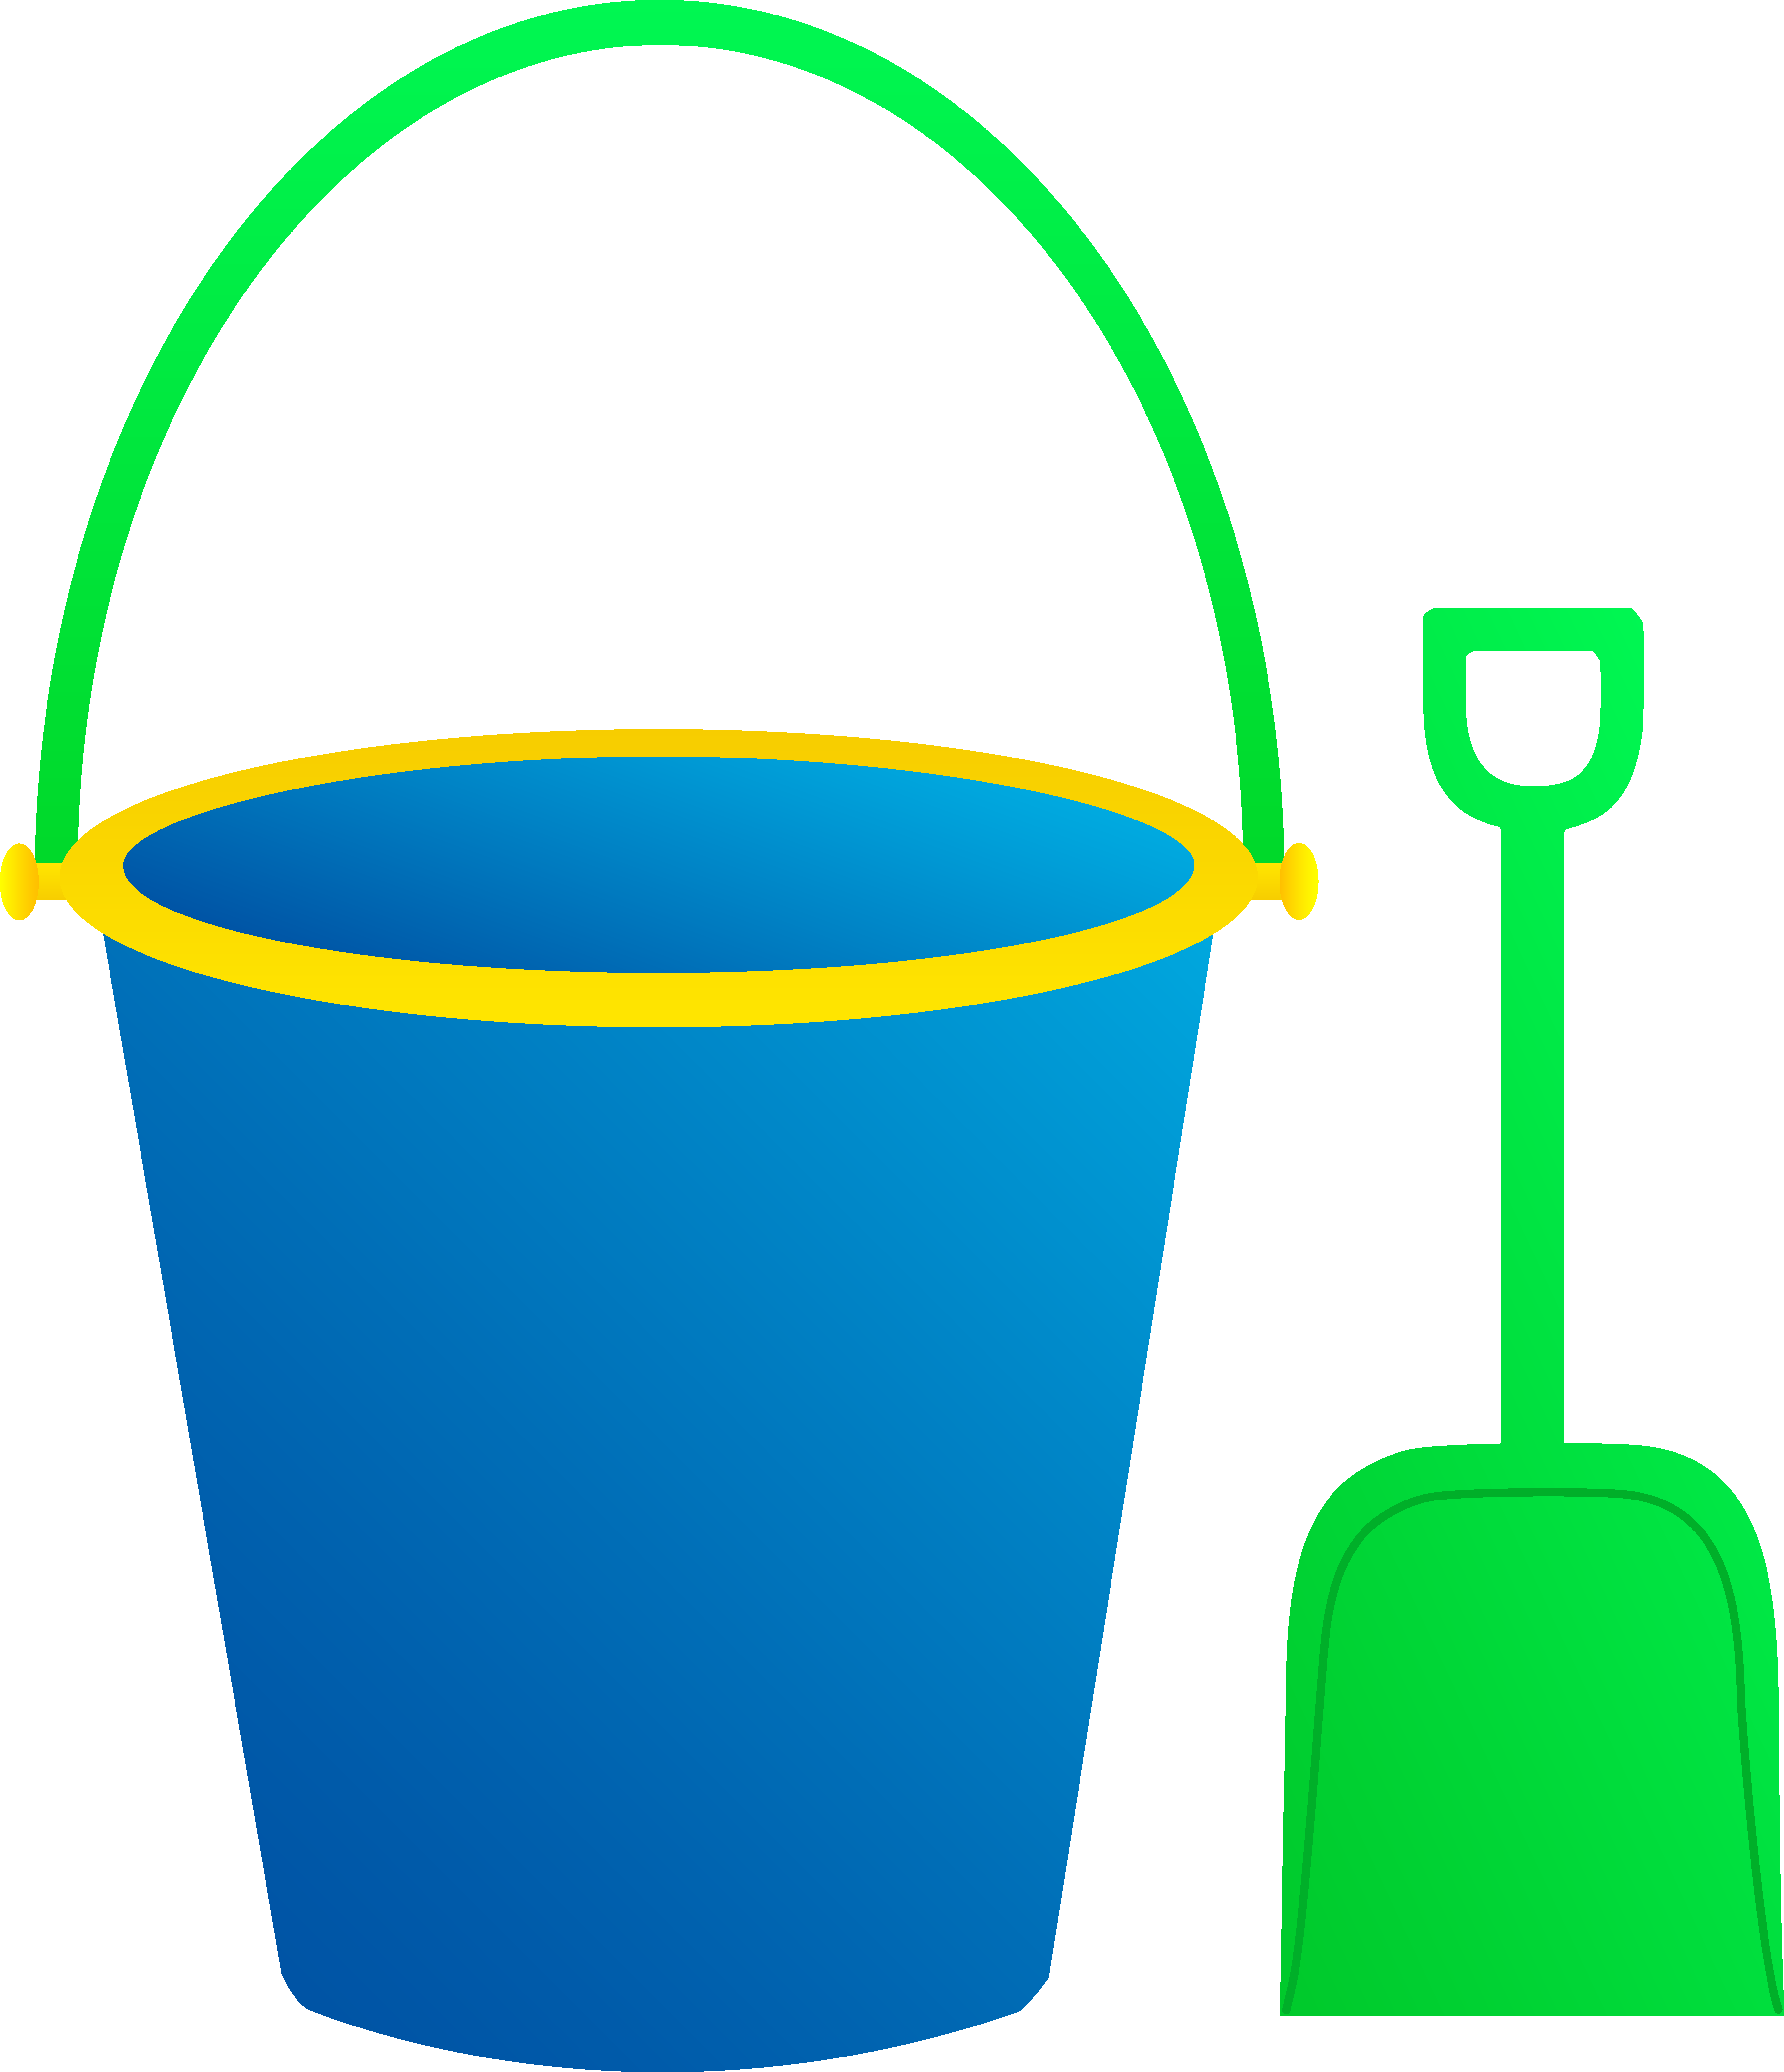 Shovel clipart blue bucket. And green free image